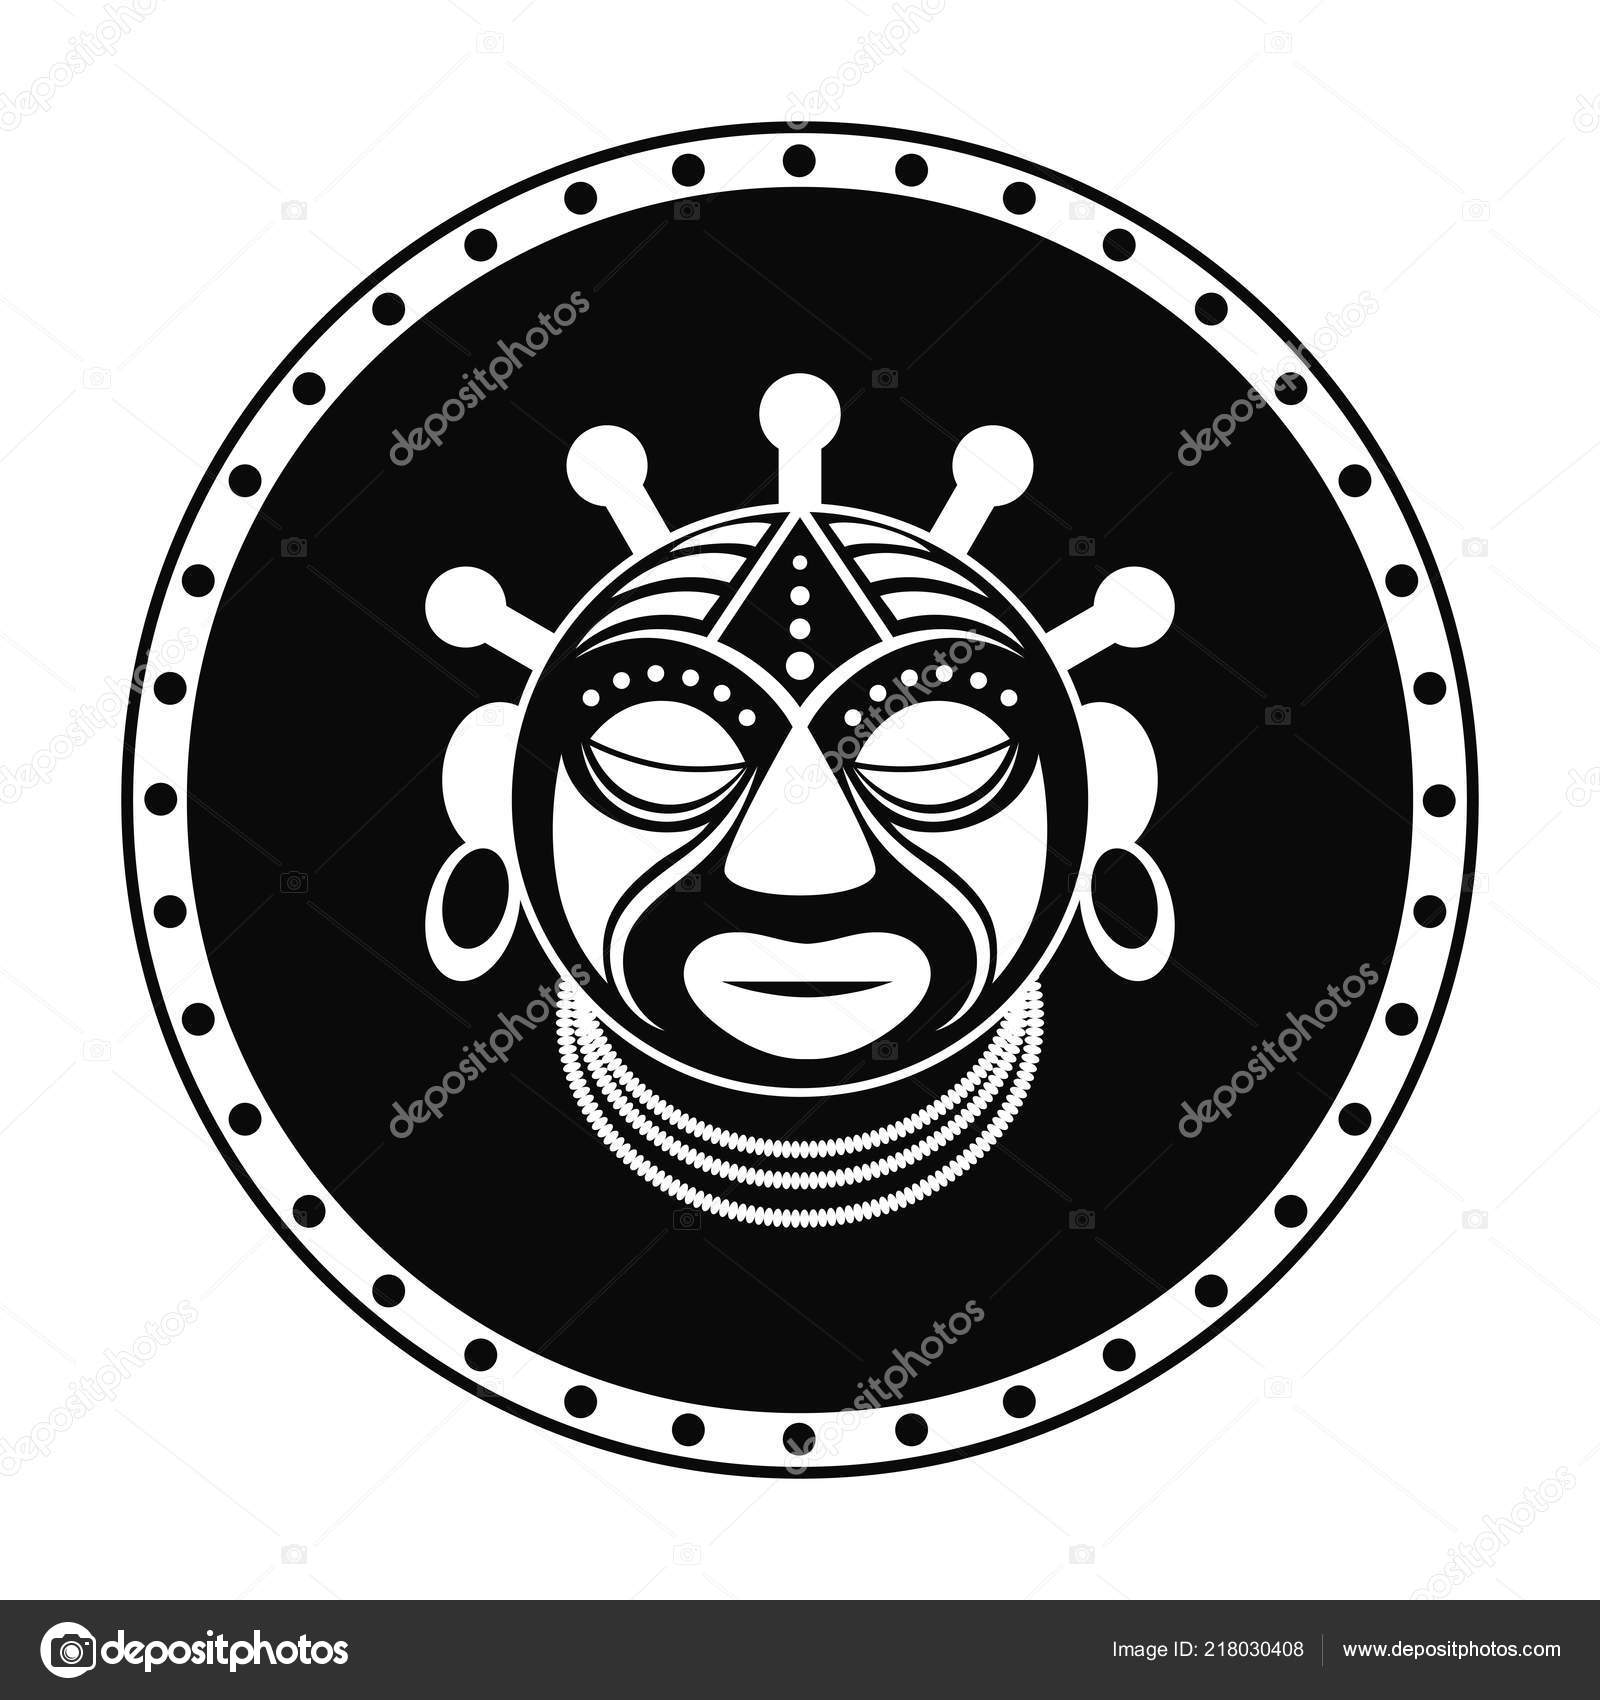 African black and white print symbol icon tribal mask design abstract art